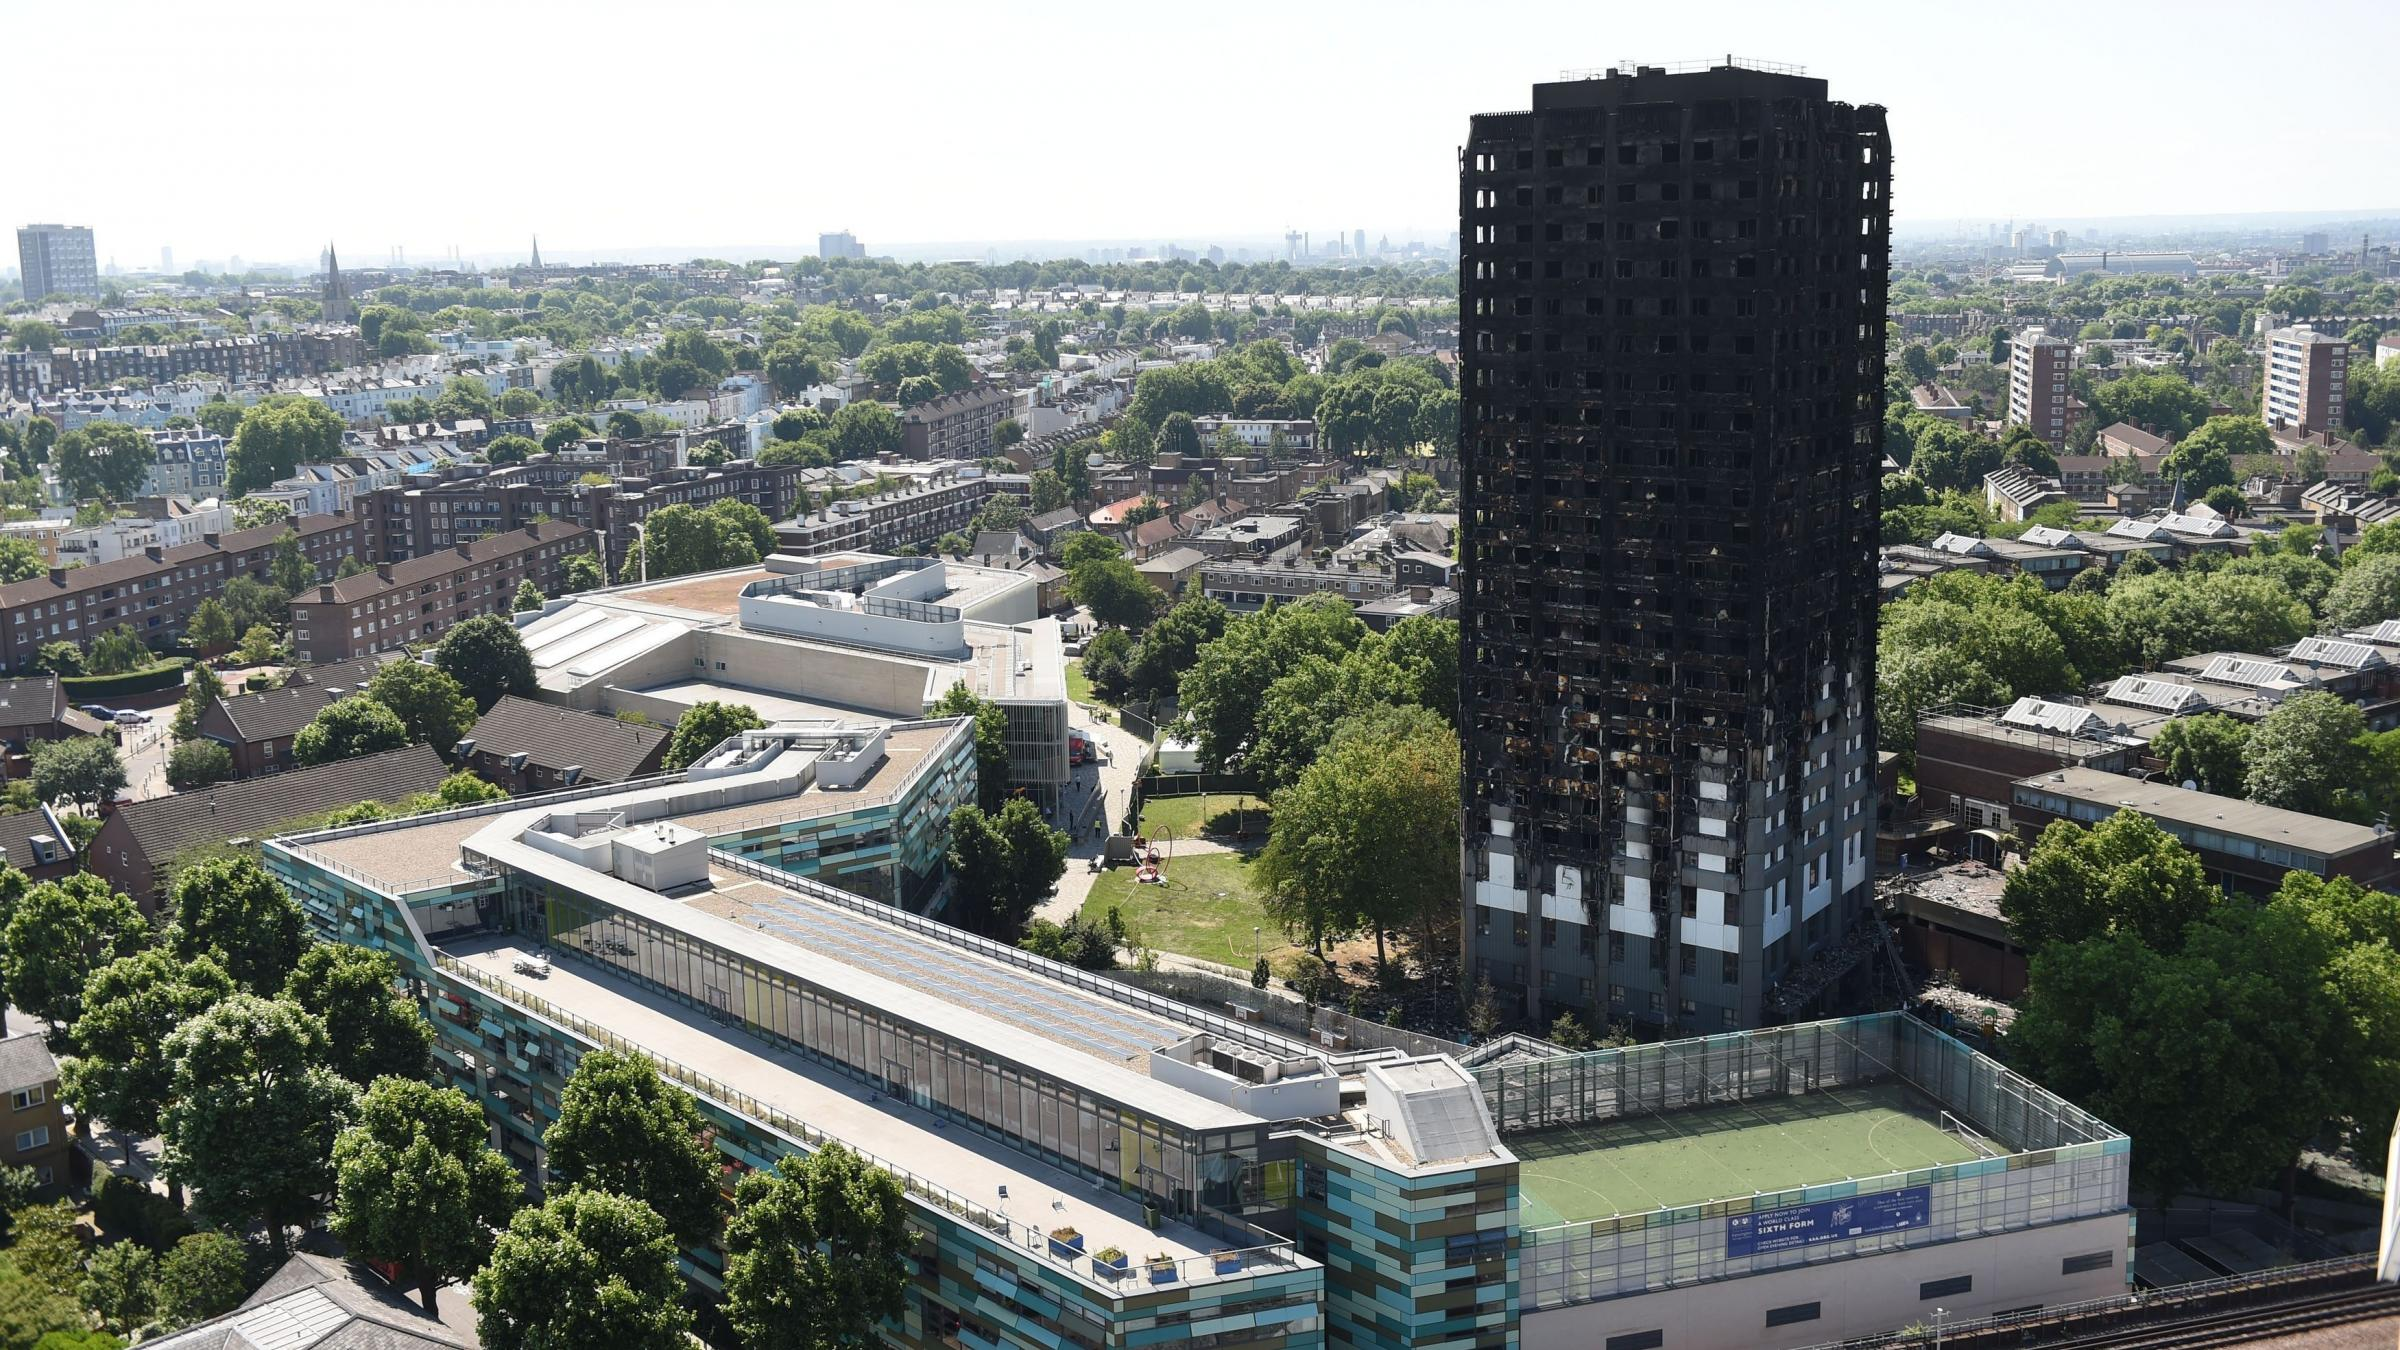 British police release footage showing devastation inside London's Grenfell tower